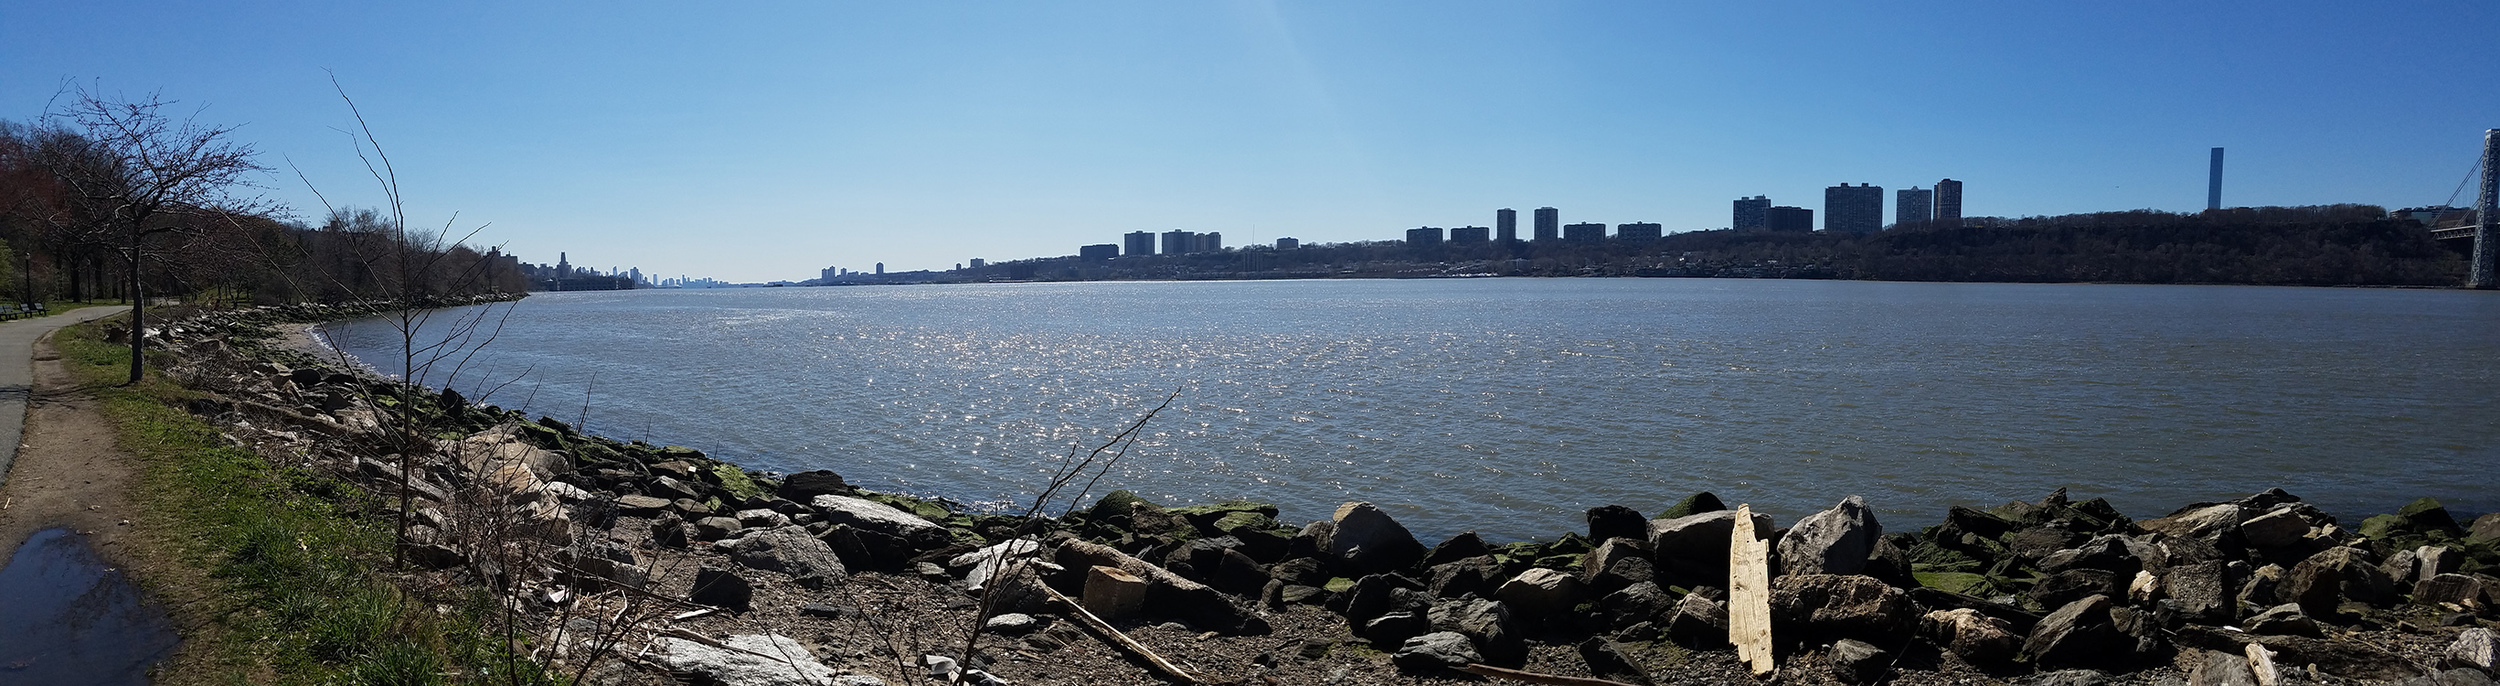 Shot this on Tuesday afternoon along the Hudson river